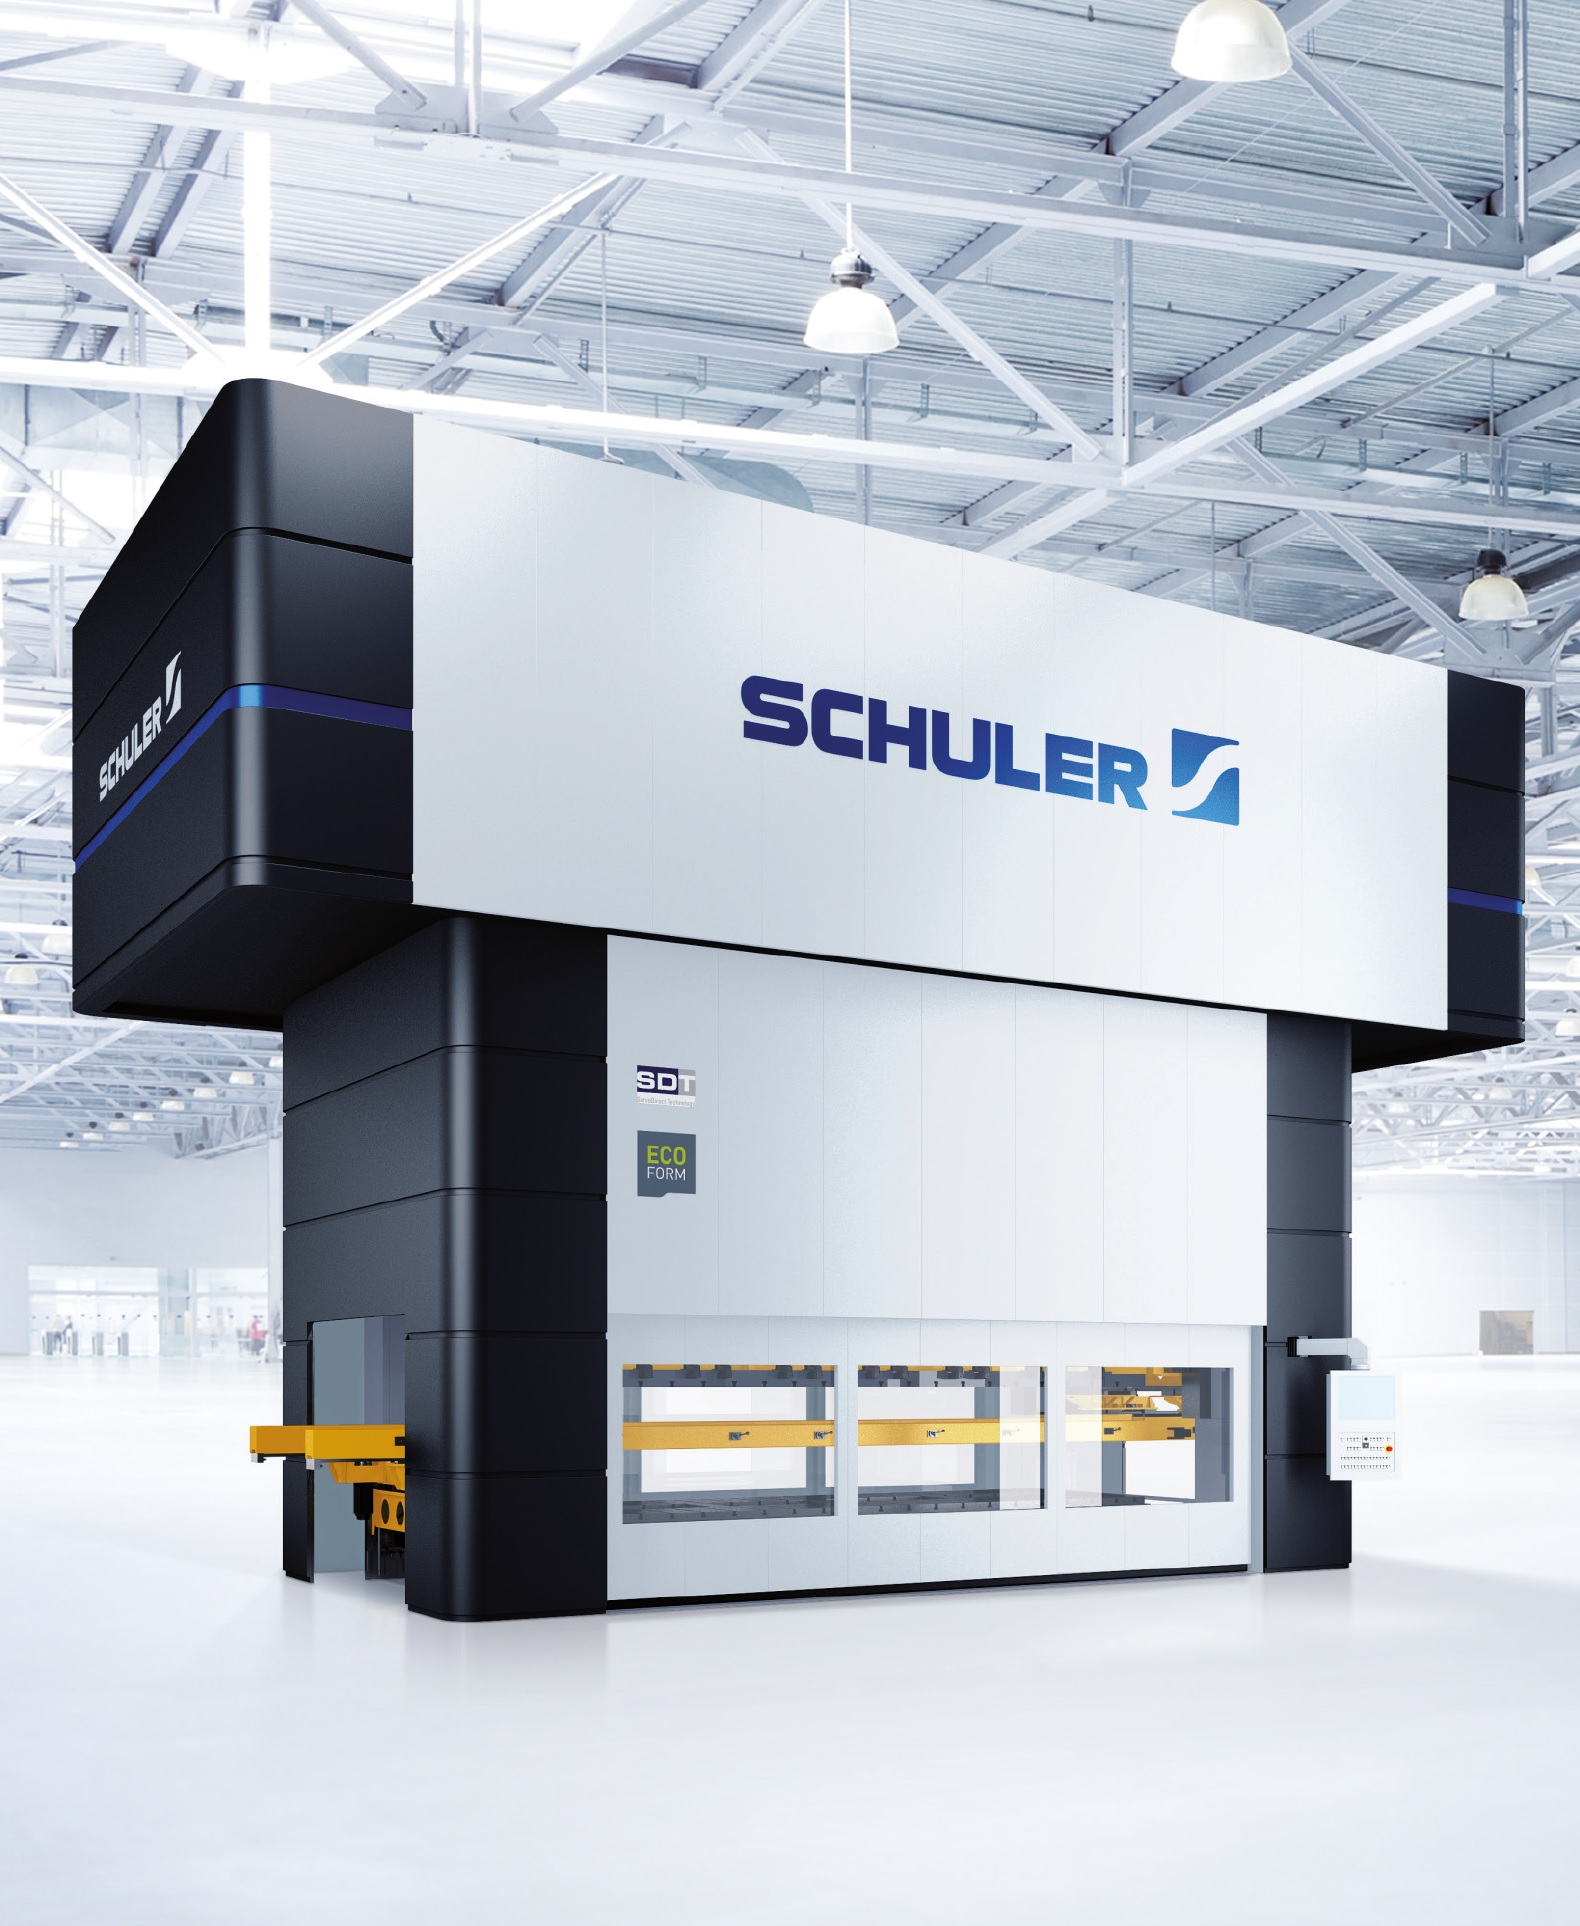 15 presses ordered from Schuler for the US and Mexico